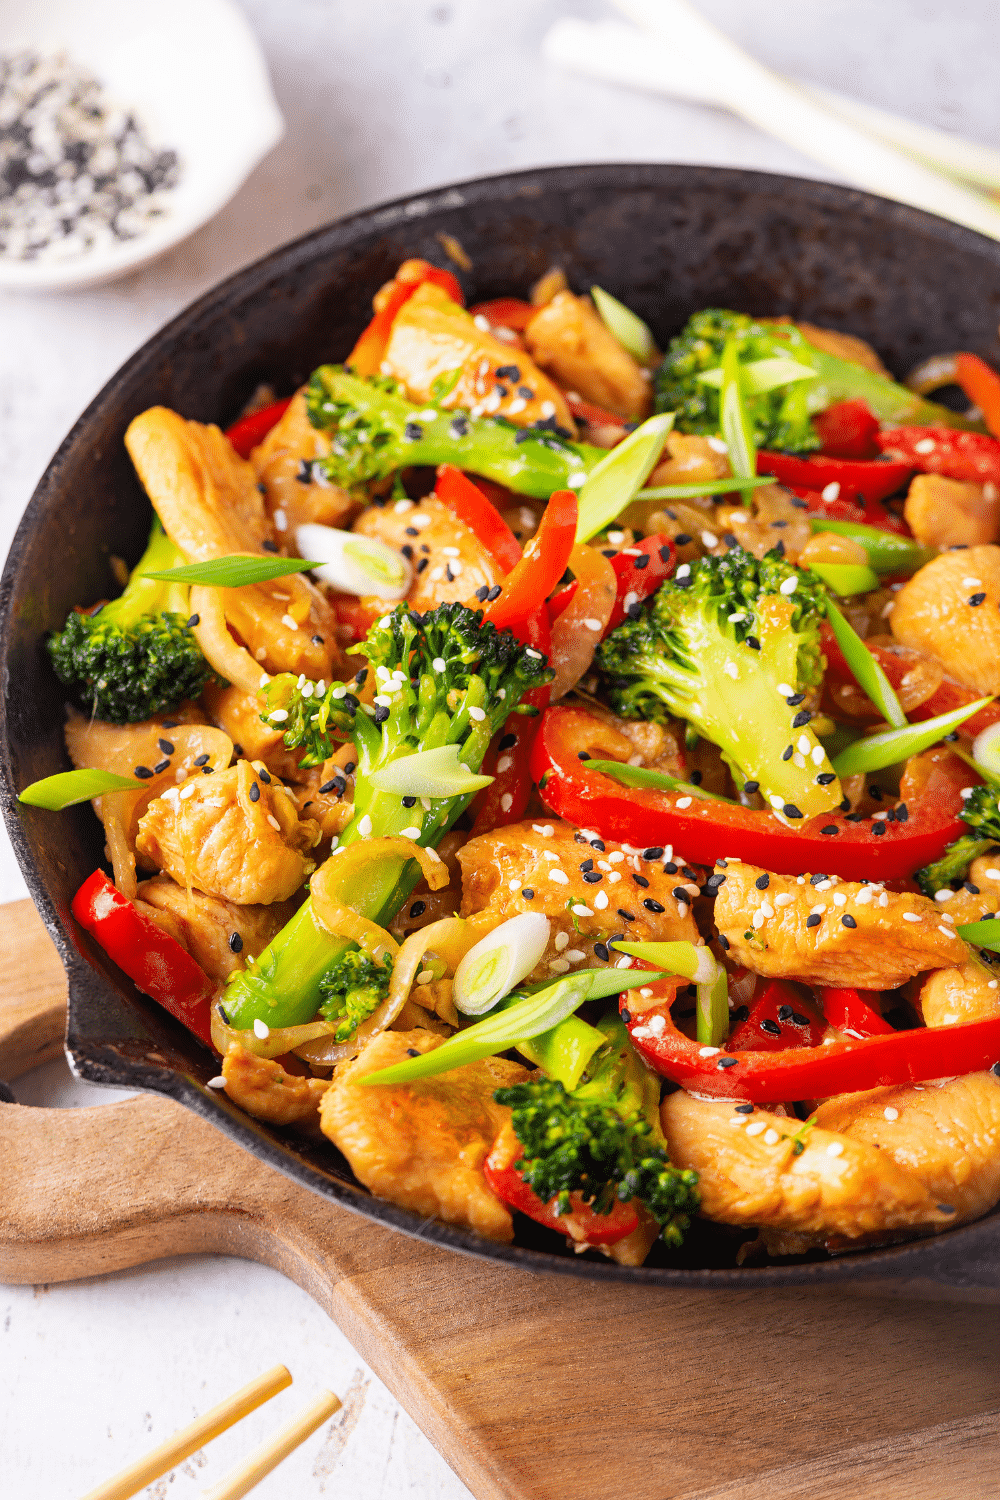 A skillet filled with keto stir fry. The skillet has chicken, broccoli, red peppers, and onions in it. Everything is covered in a keto stir fry sauce. The skillet is on a wooden cutting board on a white counter.